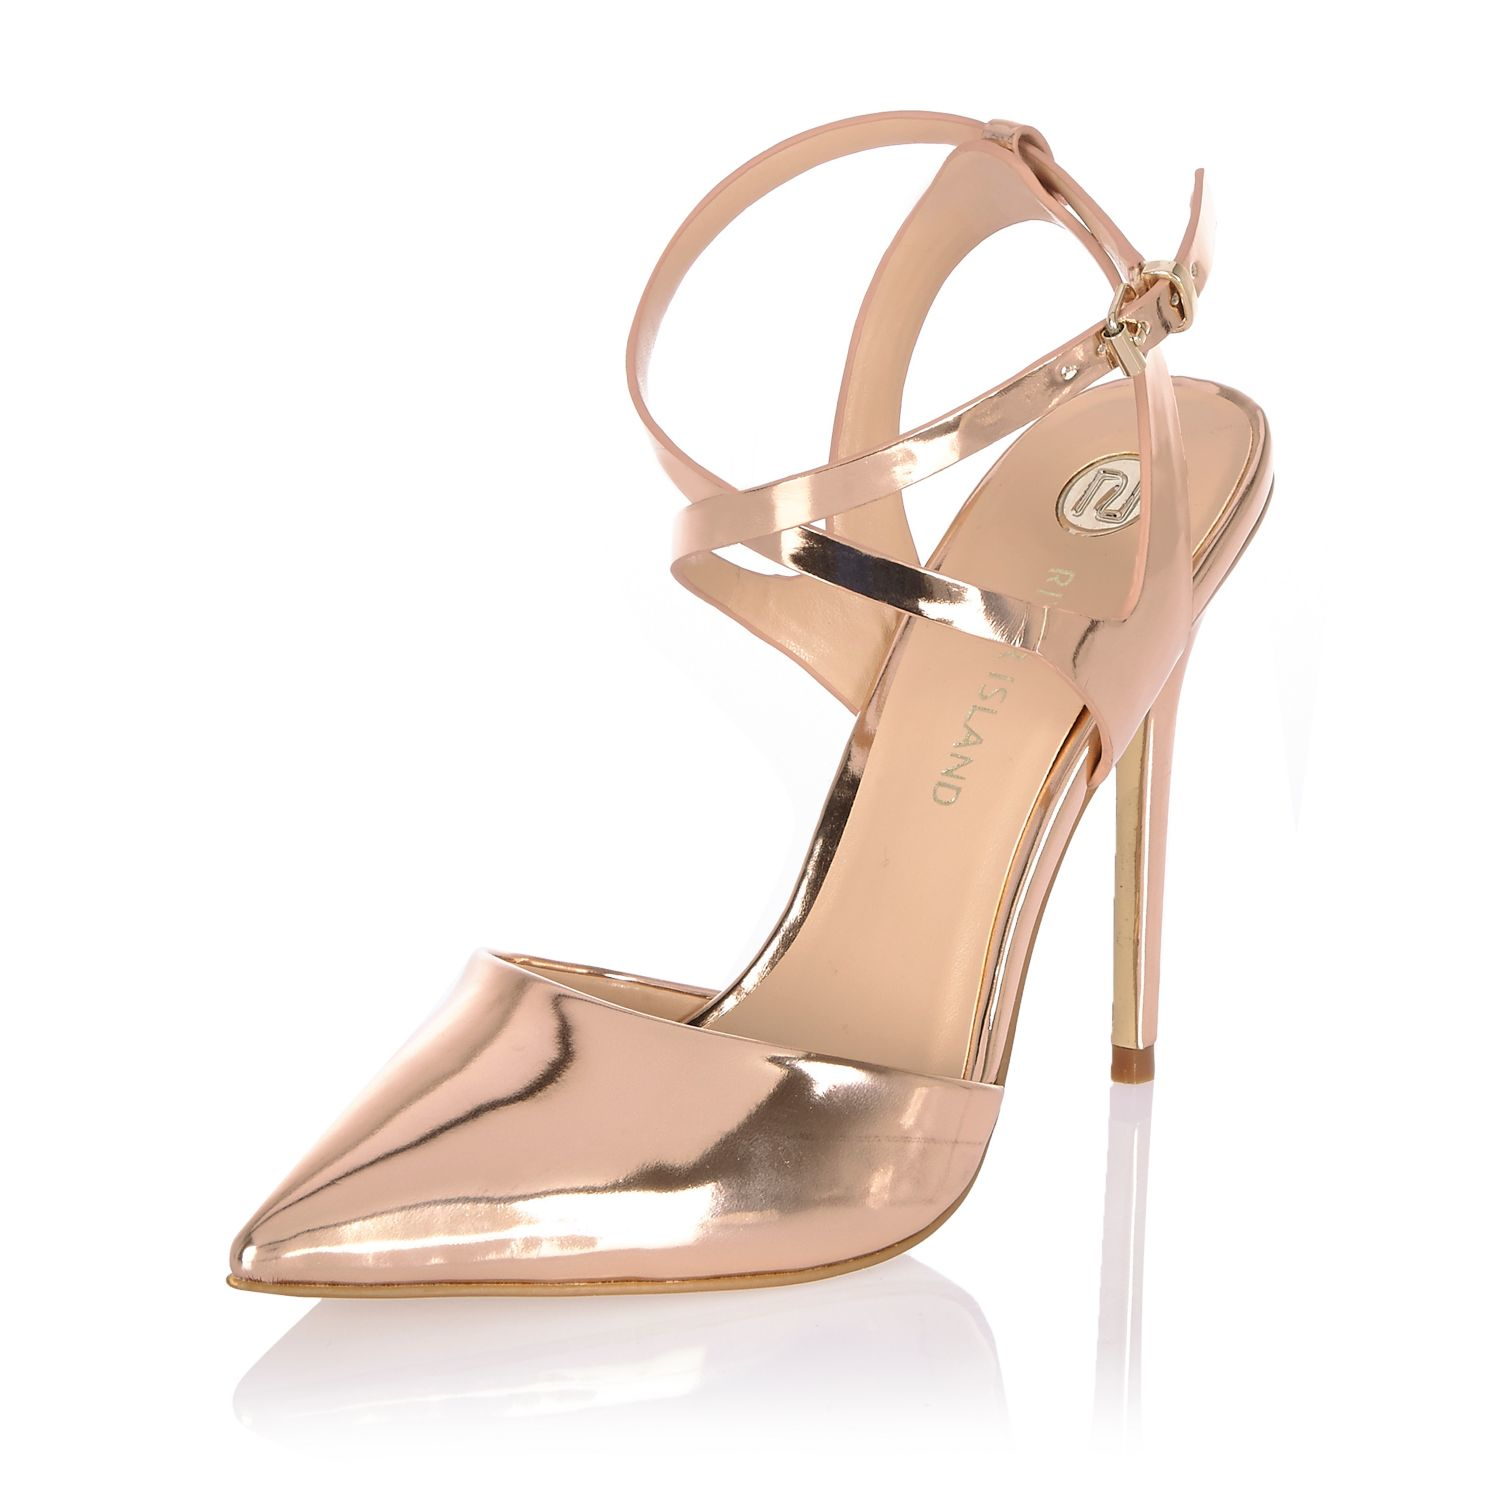 Metallic Gold Heels - Is Heel